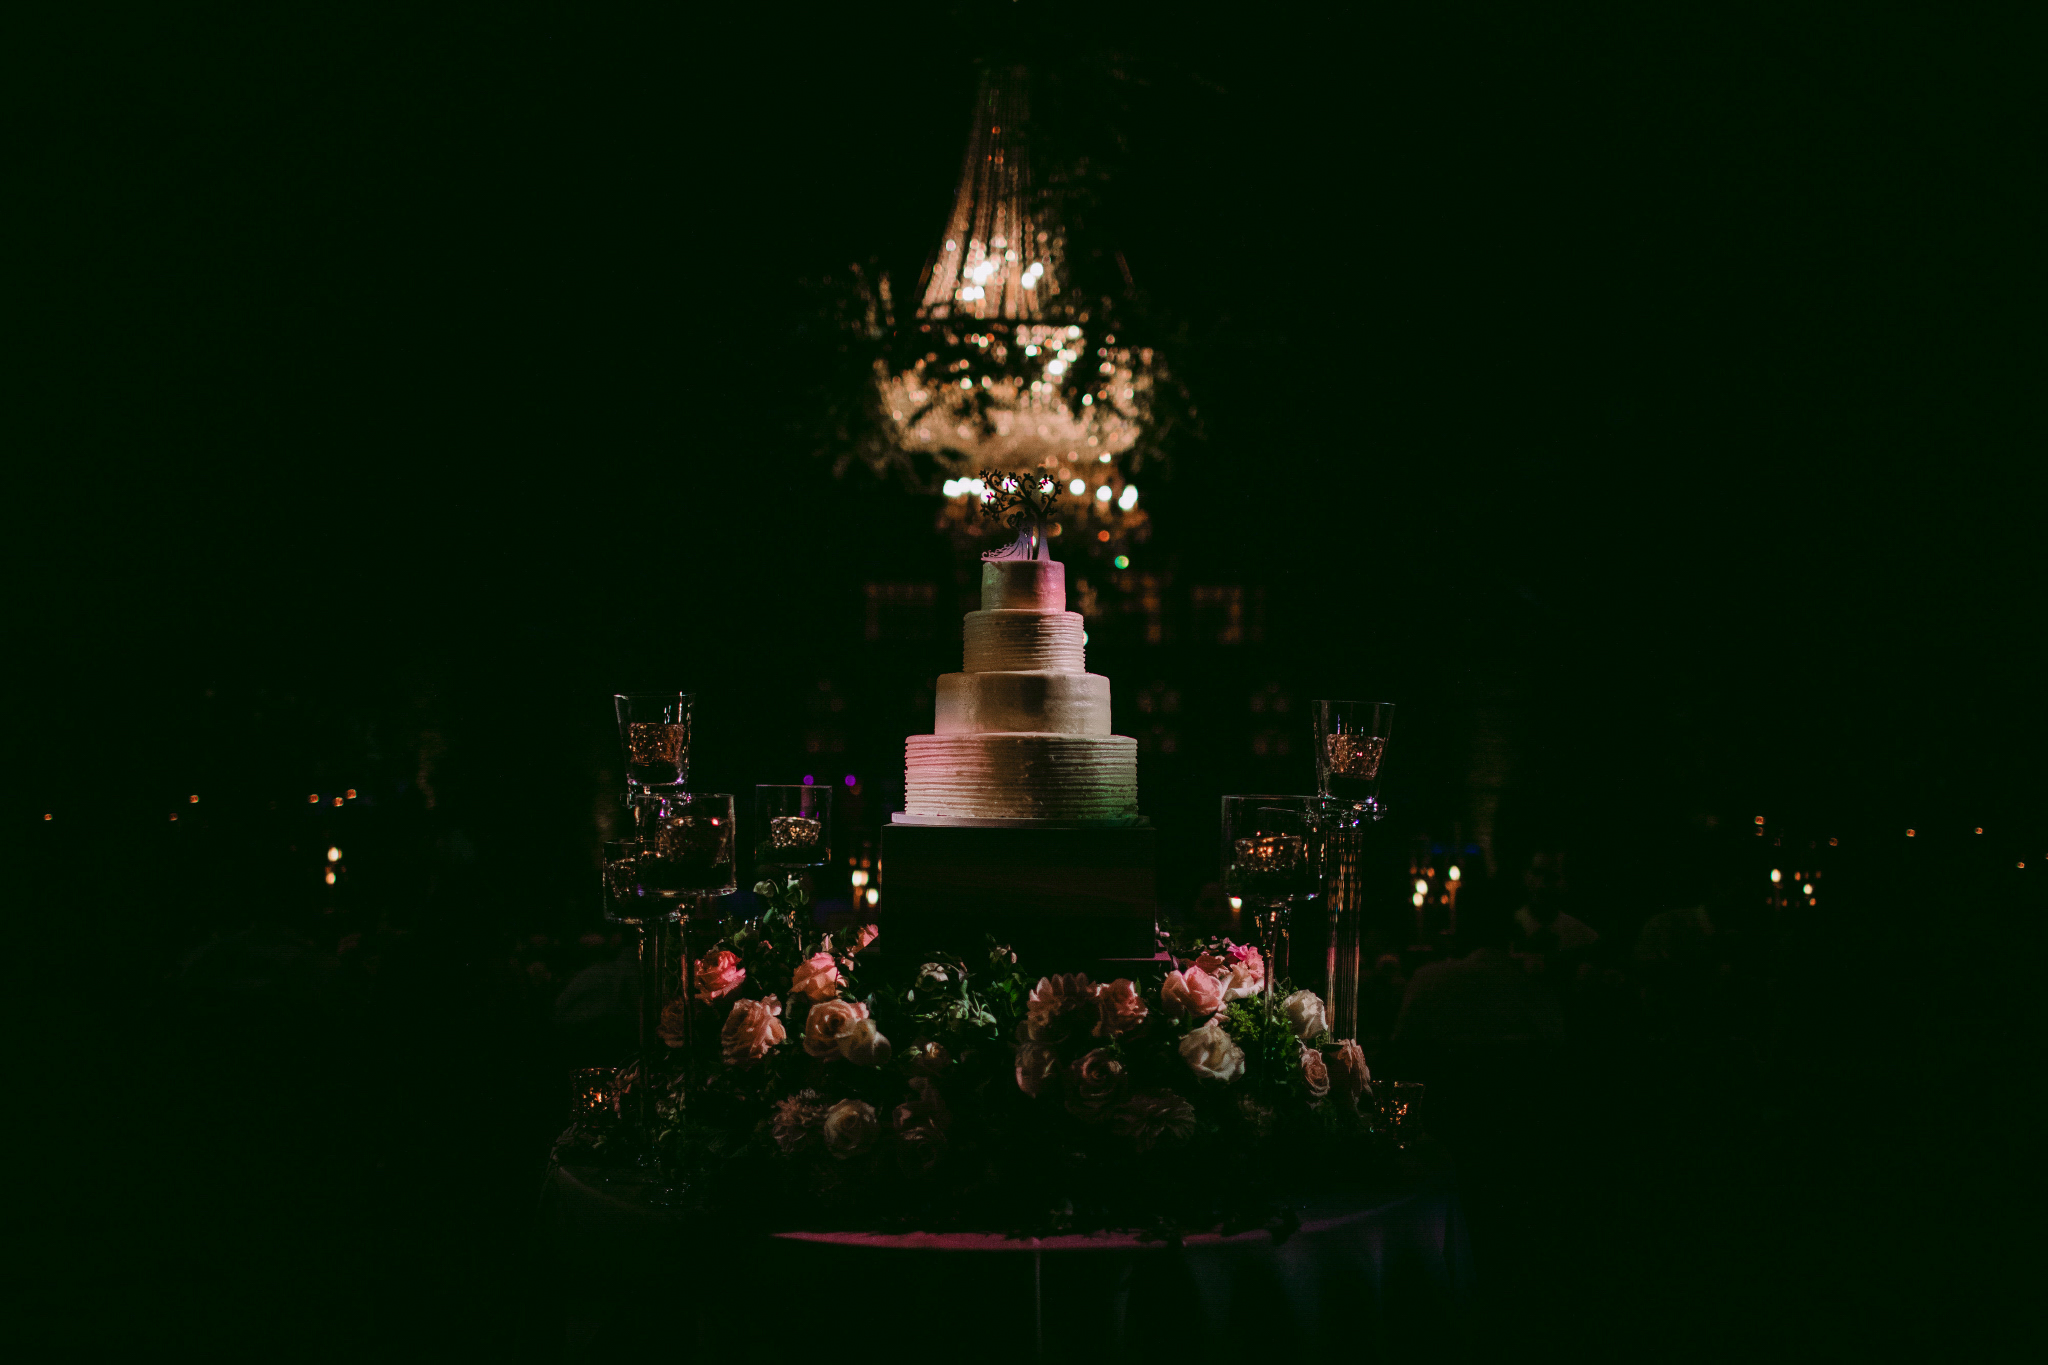 san diego wedding   photographer | low light picture of wedding cake with chandelier in   background